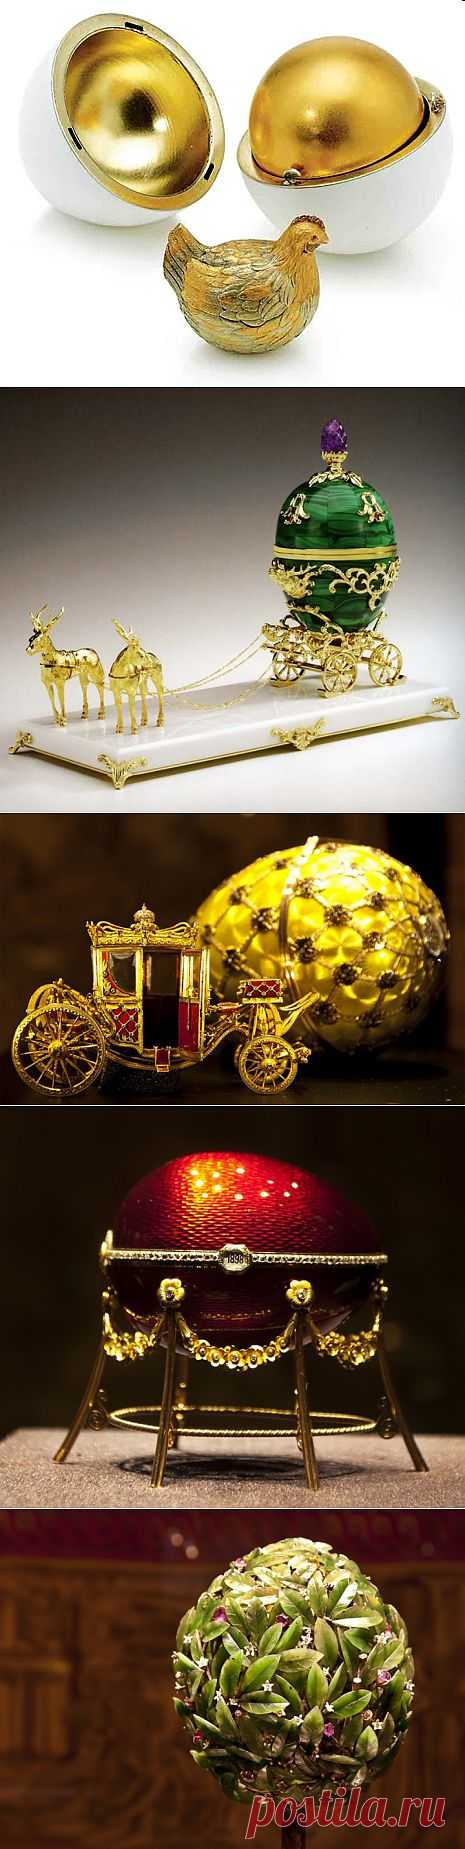 (+1) a subject - Luxury and wealth: Fabergé's eggs | Art